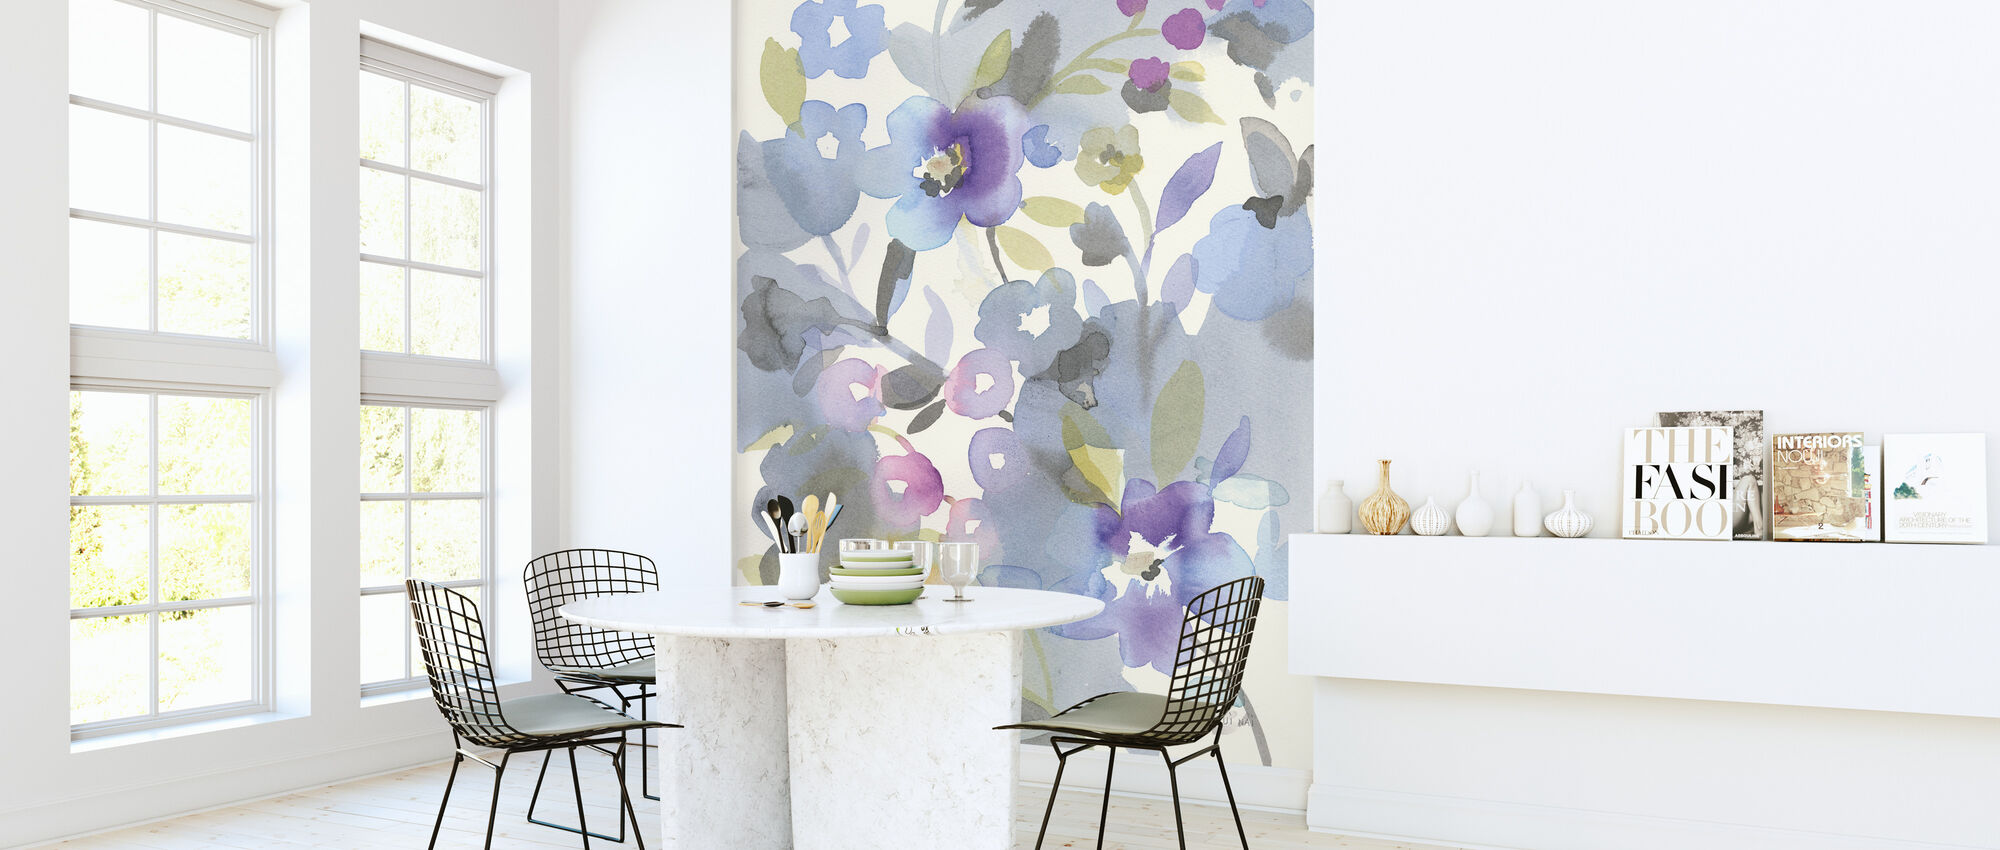 Jewel Garden II - Wallpaper - Kitchen